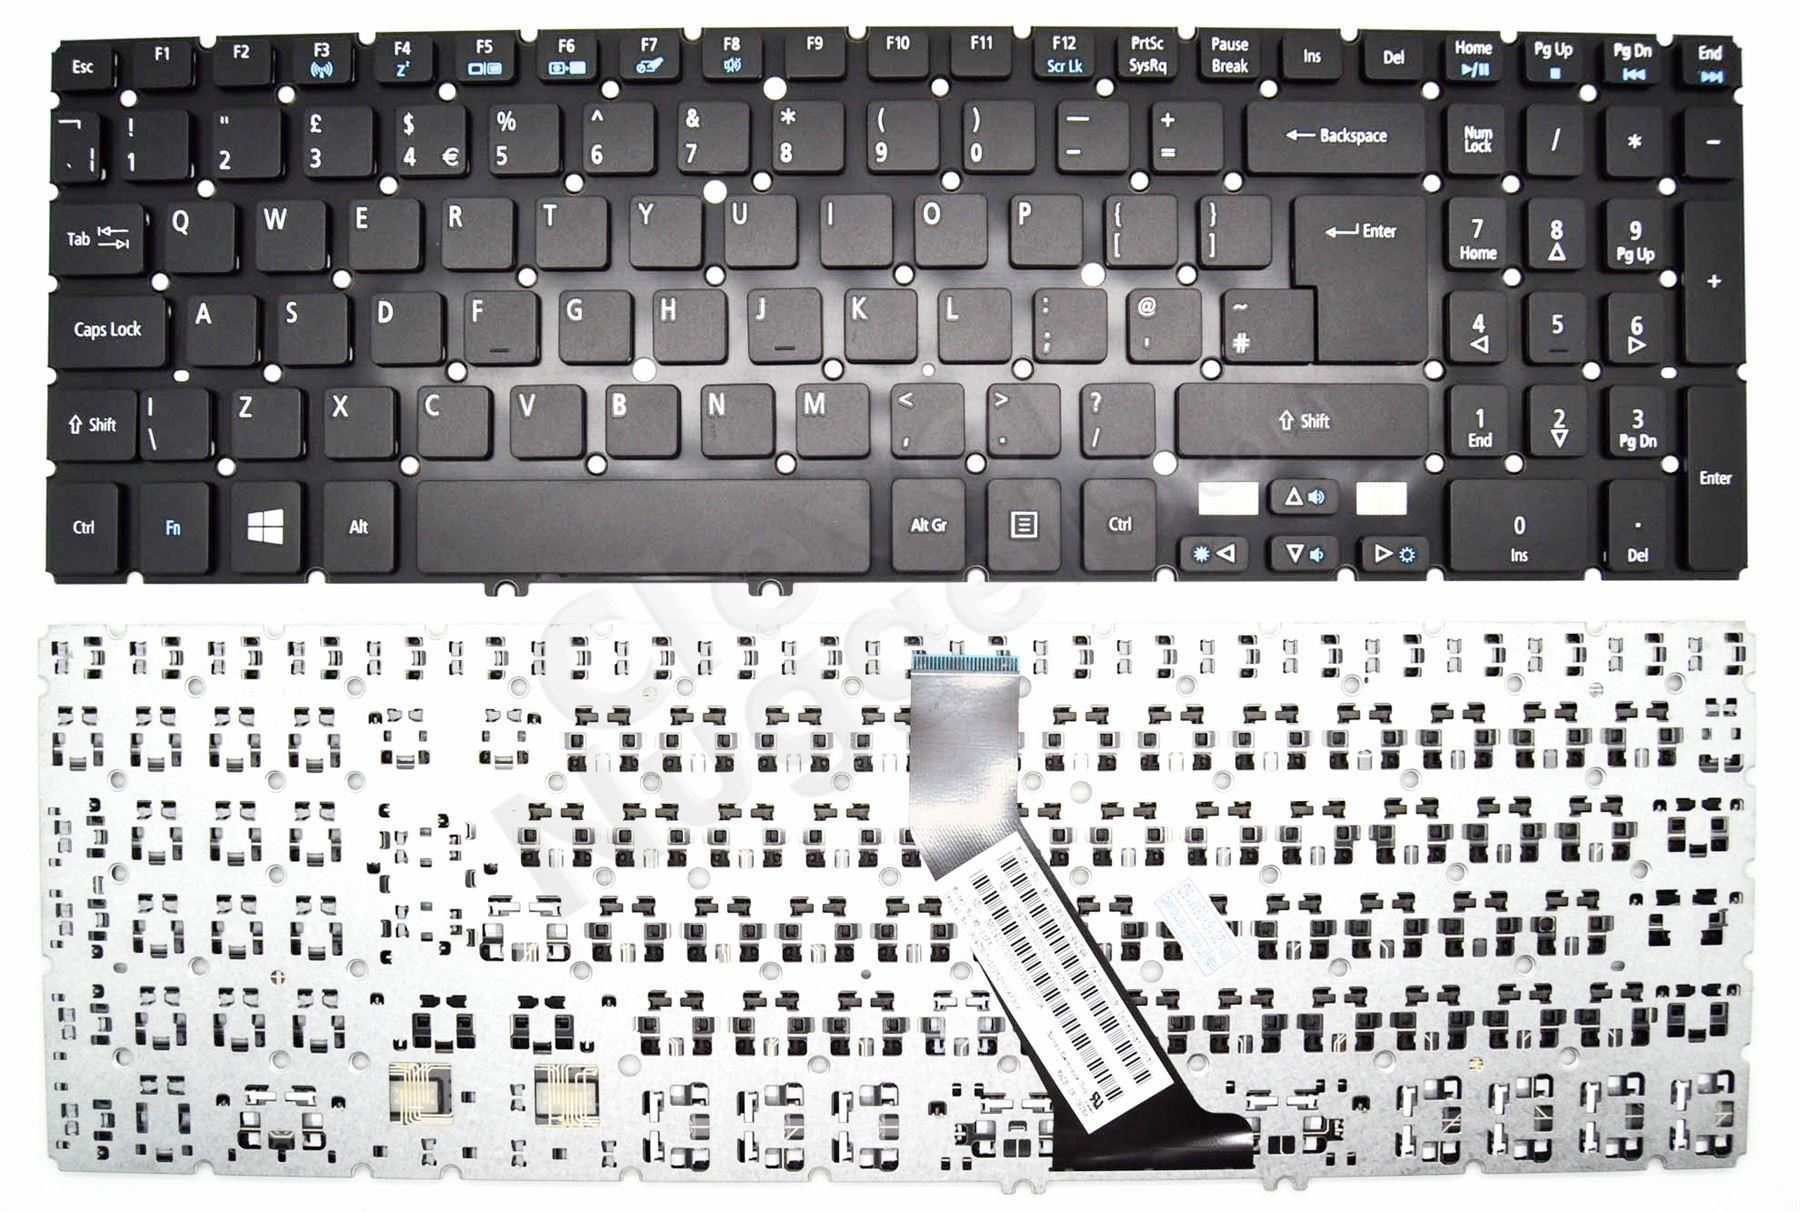 Acer Aspire V5 531 531g Keyboard Uk Layout Backlit With Backlight Laptop Parts Diagram